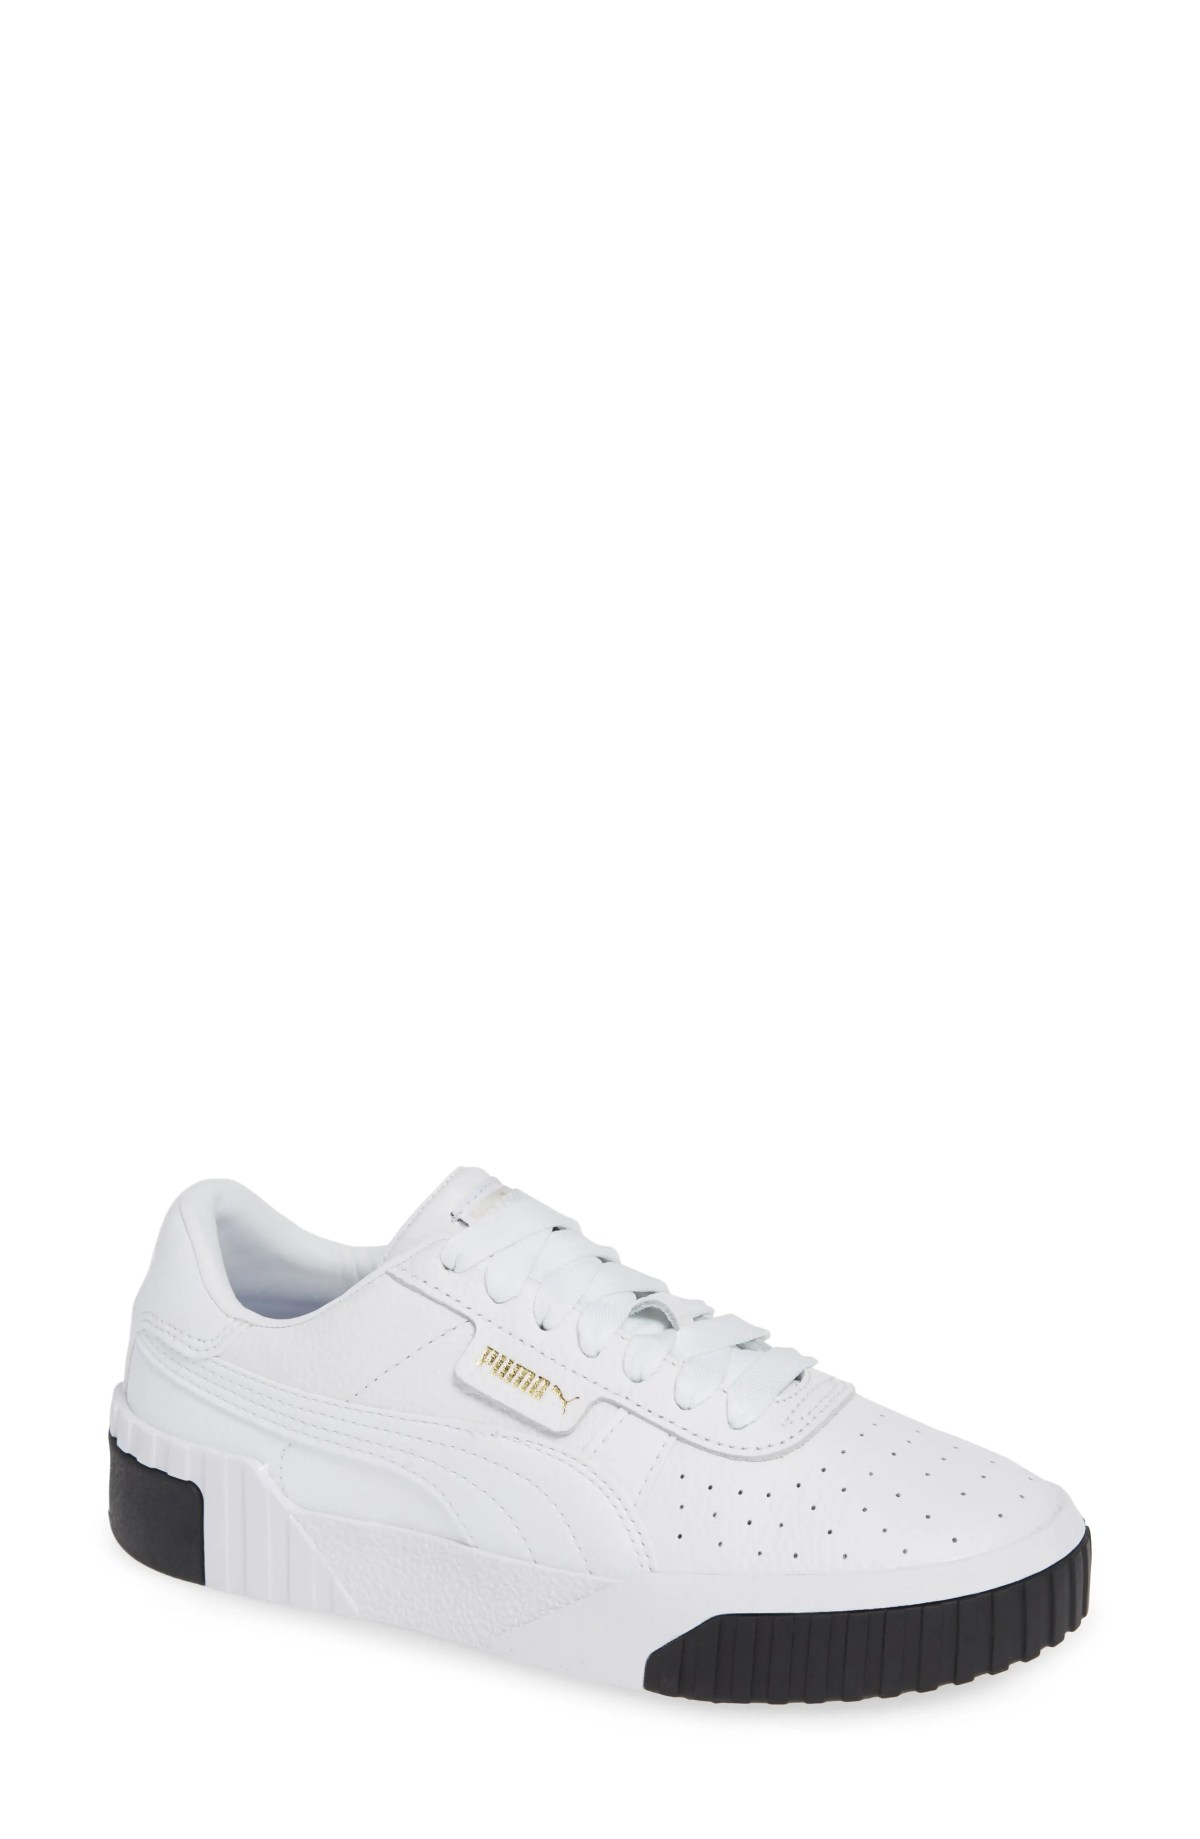 PUMA California Sneaker, Main, color, PUMA WHITE/ PUMA BLACK